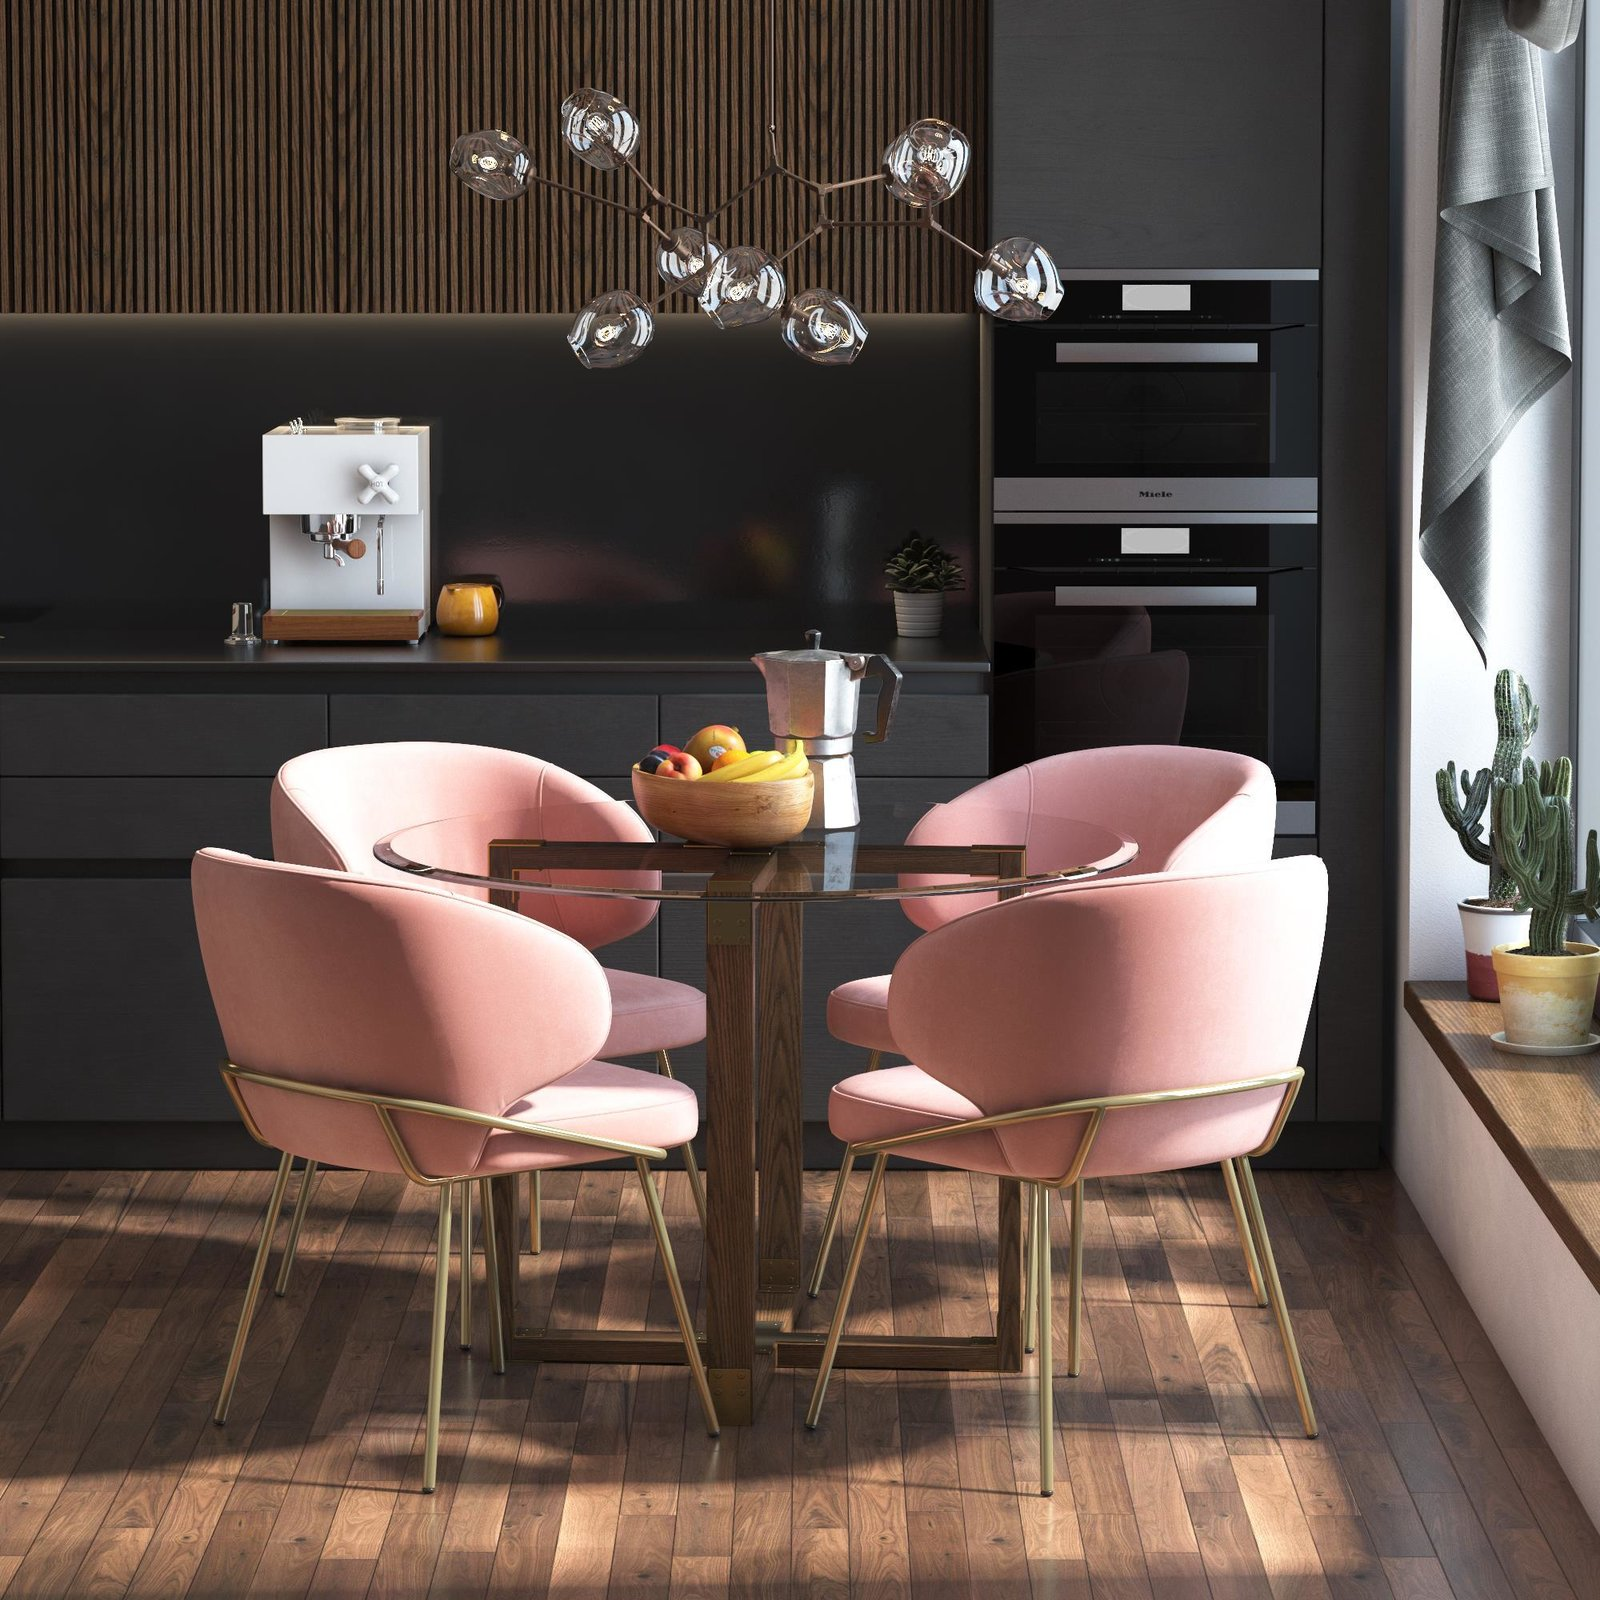 The Durham Glass Top Dining Table fuses industrial and modern looks with a rustic oak base and beveled glass top for $240.  Photo 2 of 7 in Queer Eye's New Furniture Collection Is the Best Thing You Can Buy at Walmart